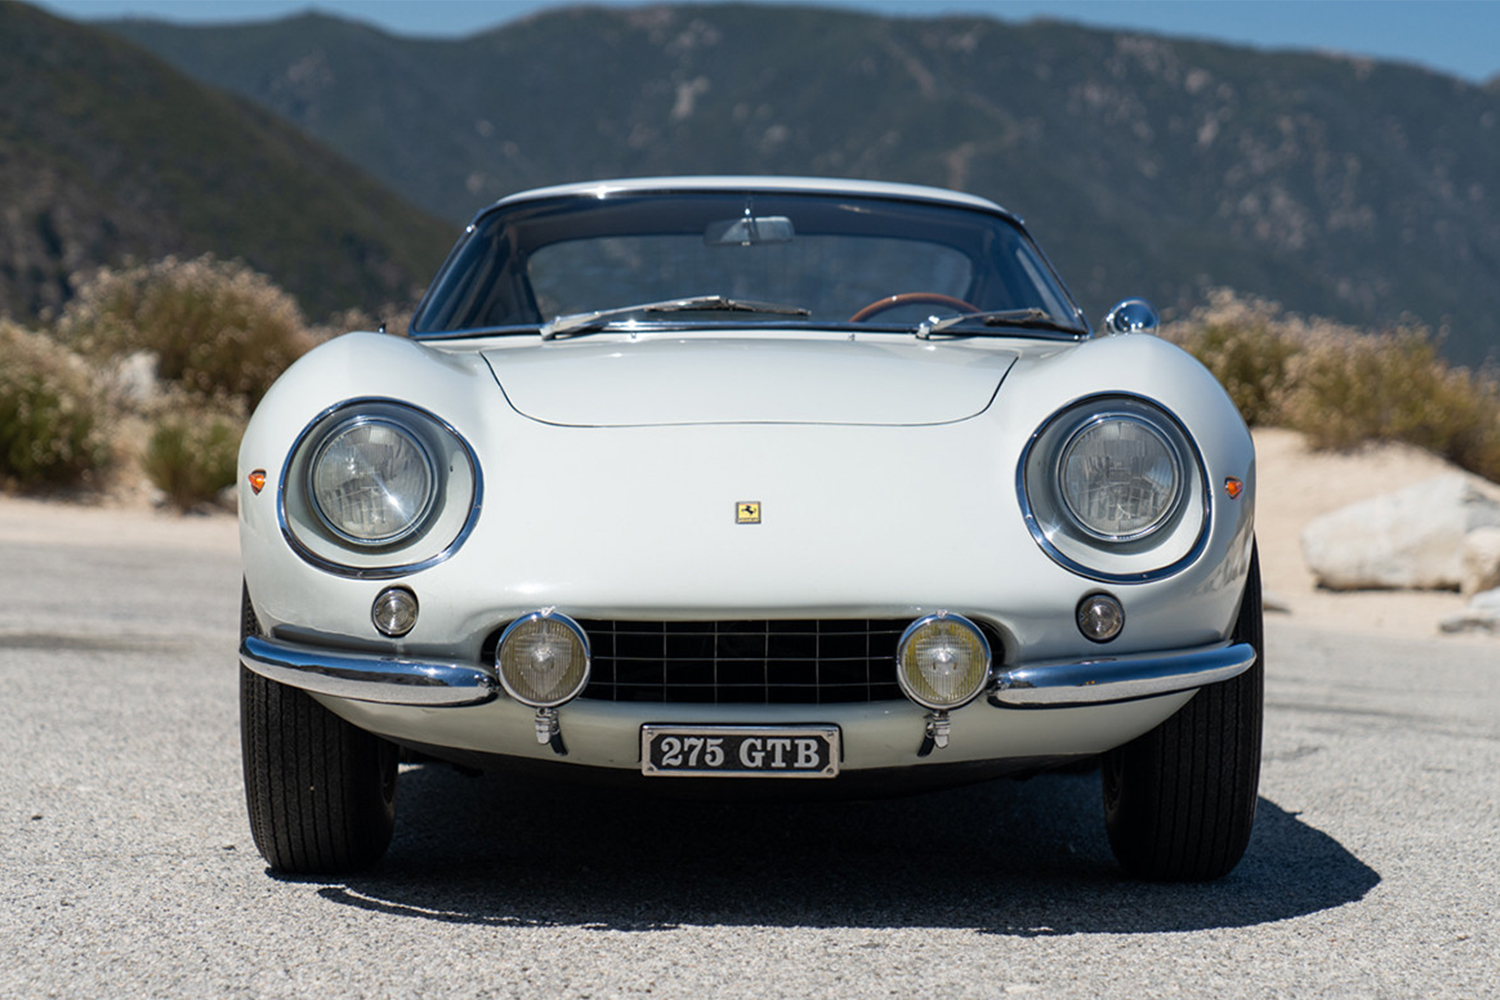 This Ferrari Is The Most Expensive Car Sold Entirely Online Insidehook